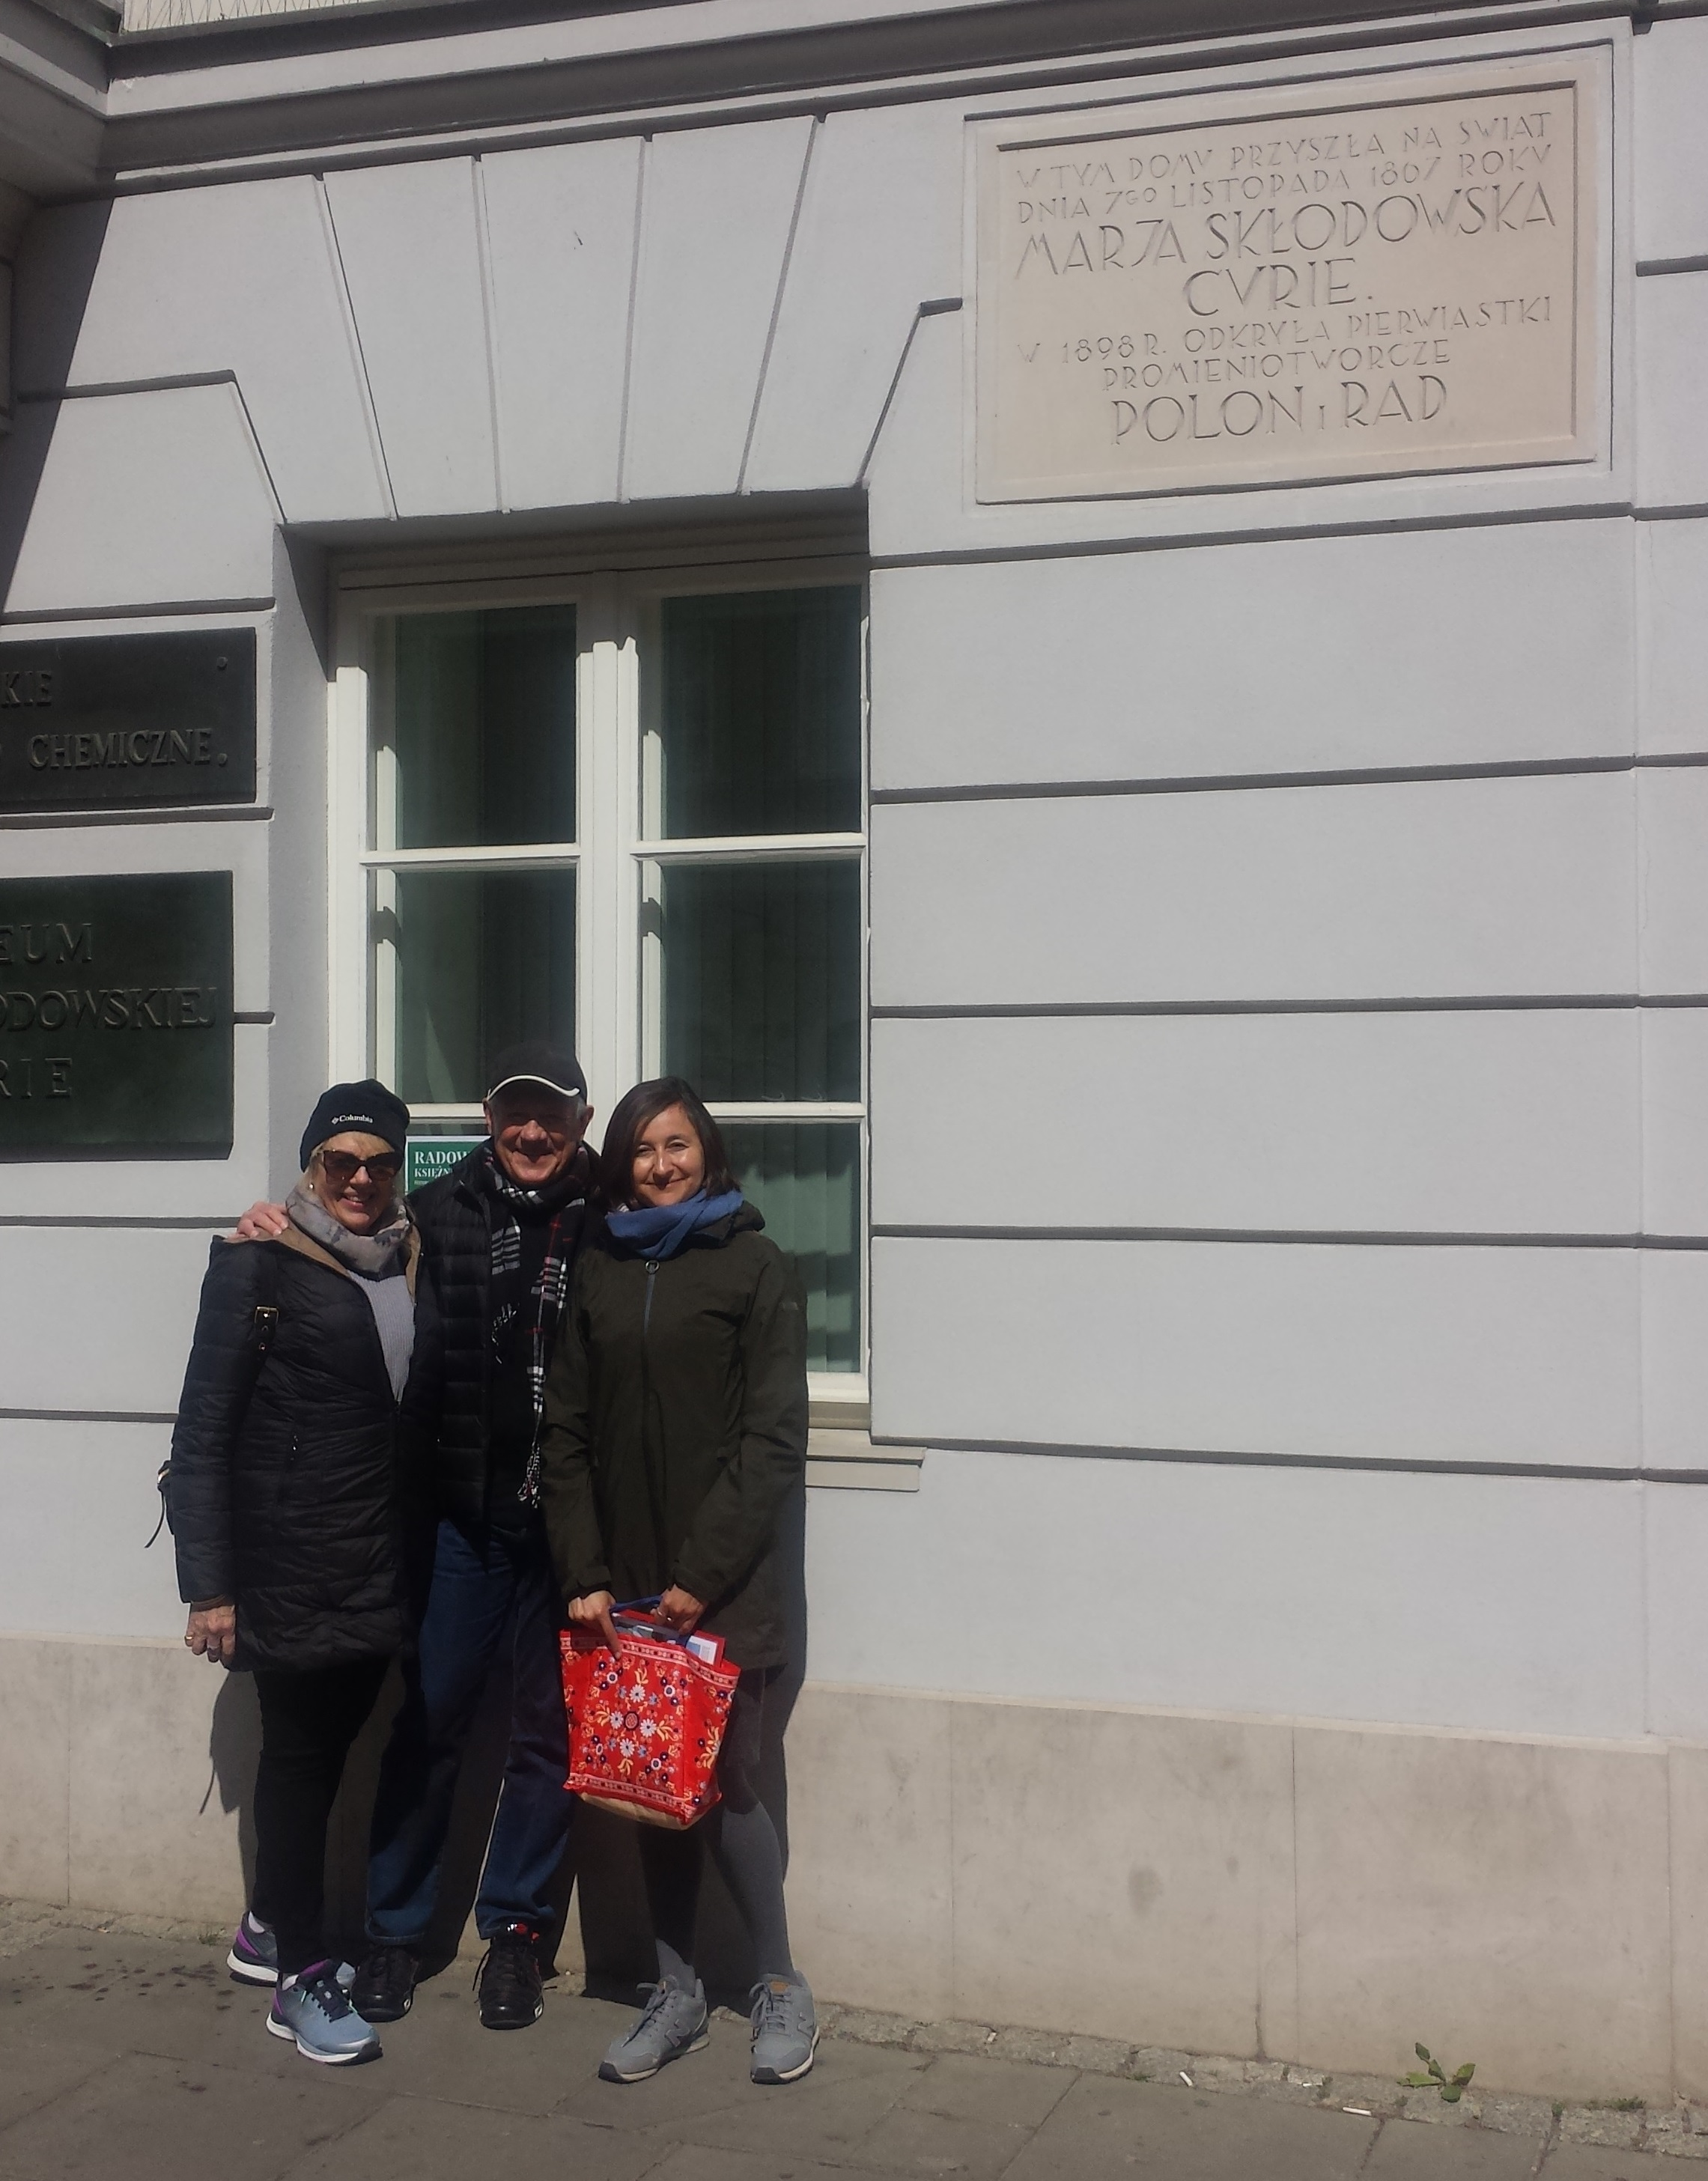 Step in Warsaw - City guide to Warsaw. With my lovely tourists from Brisbane (Australia) in front of the Maria Skłodowska-Curie's birthplace, which houses a museum devoted to her life and work. Warsaw, 03.05.2019.